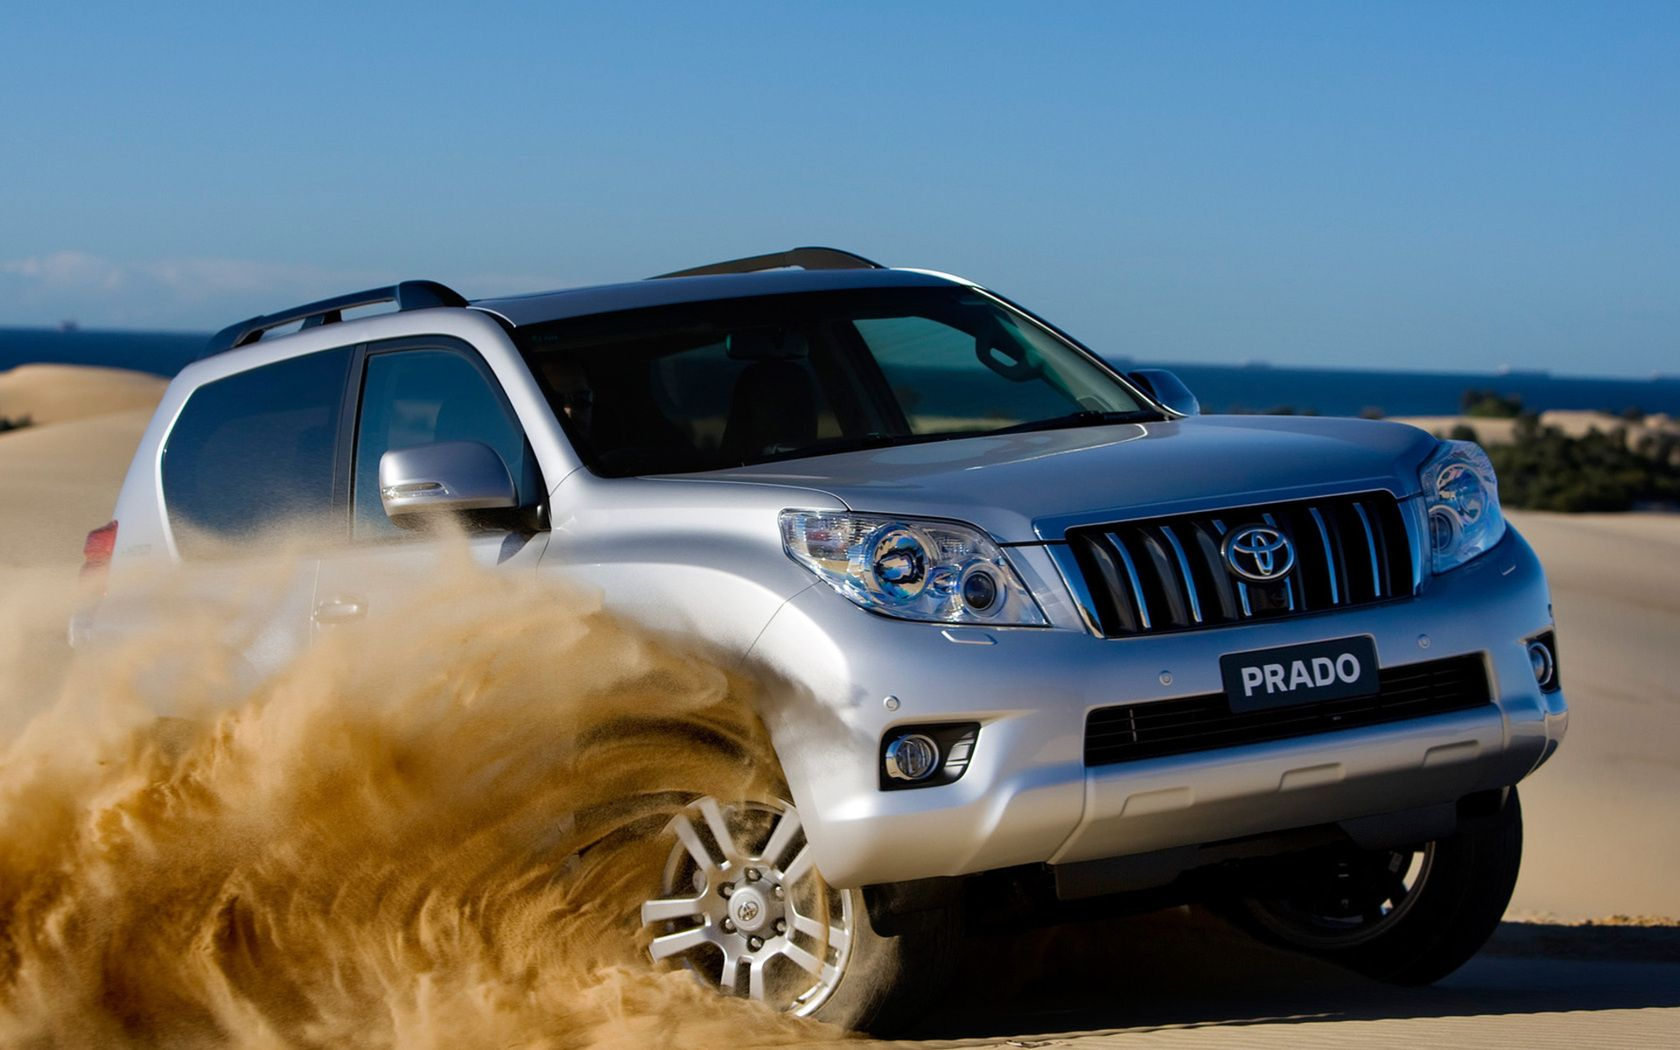 Toyota land cruiser hd wallpapers hd wallpapers free desktop wallpapers wallpapers for free in high quality resolutions